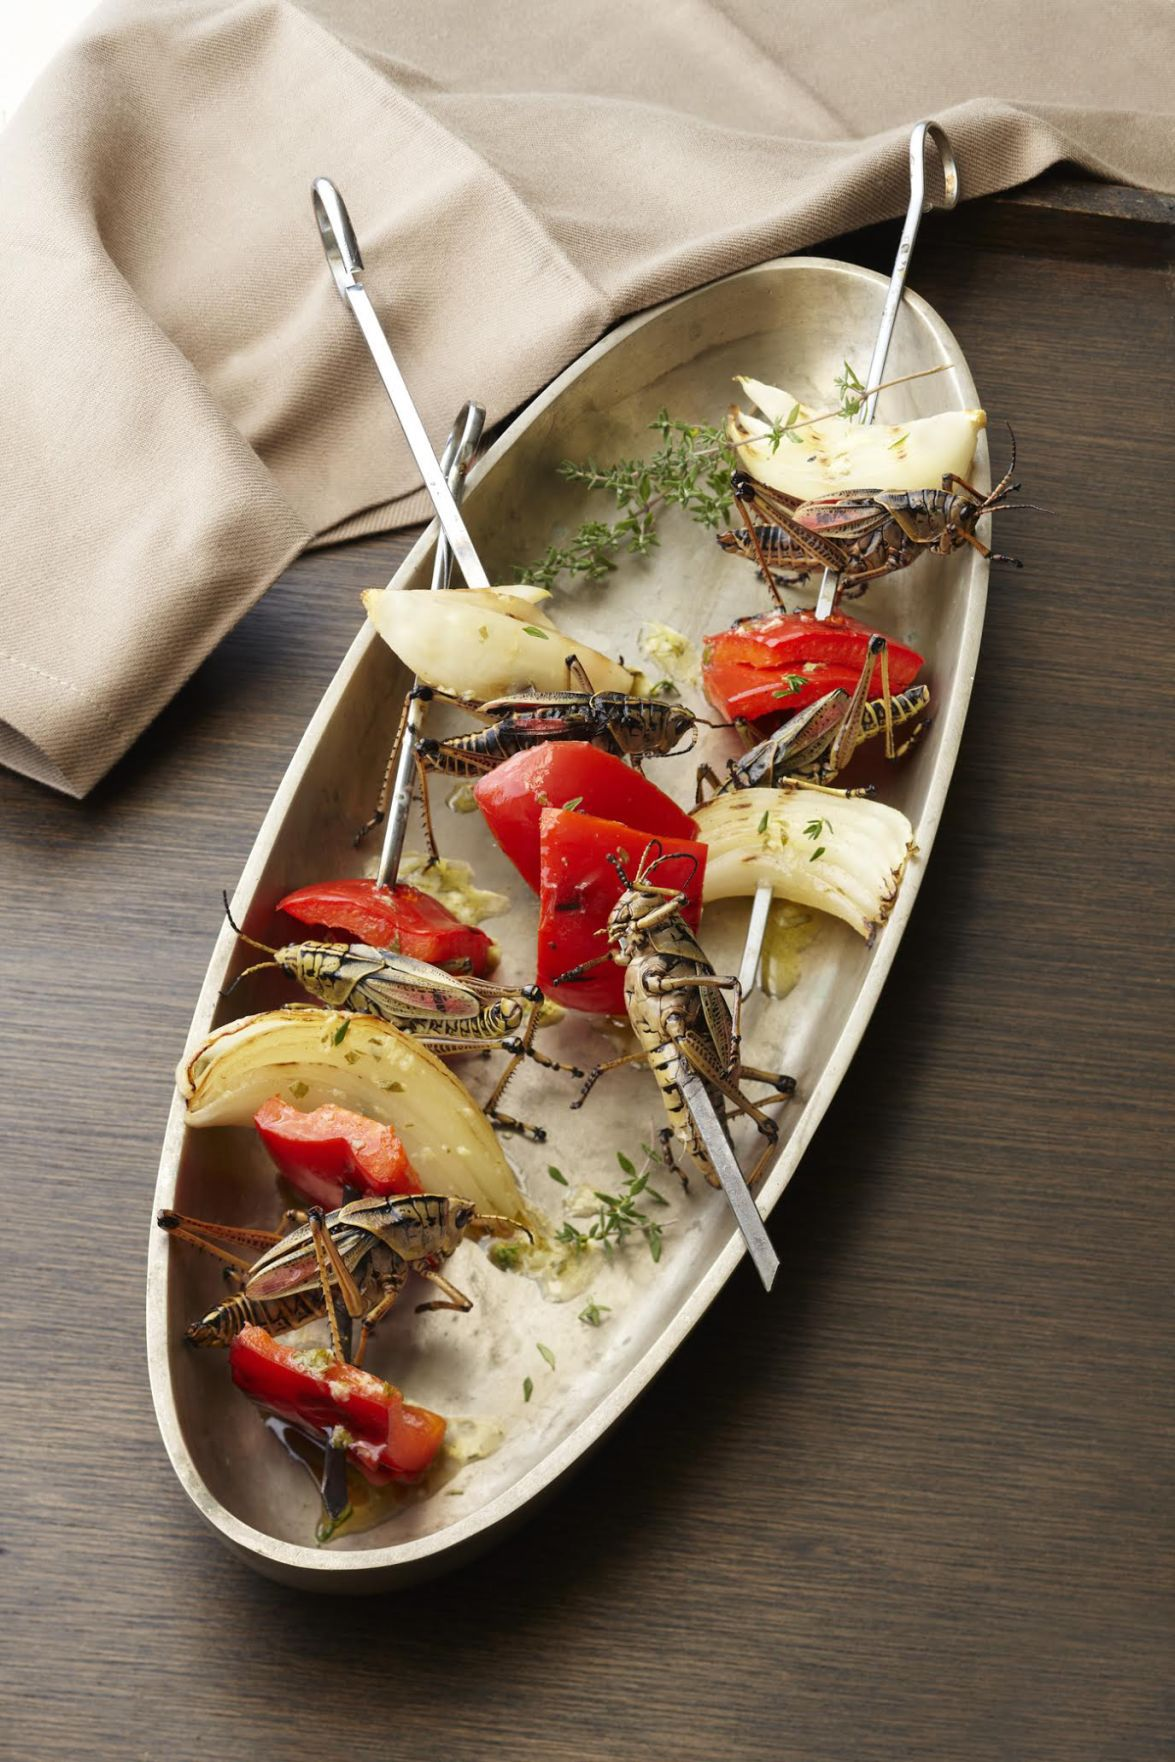 Adventurous eaters enjoy novelty, nutritional benefits of insects